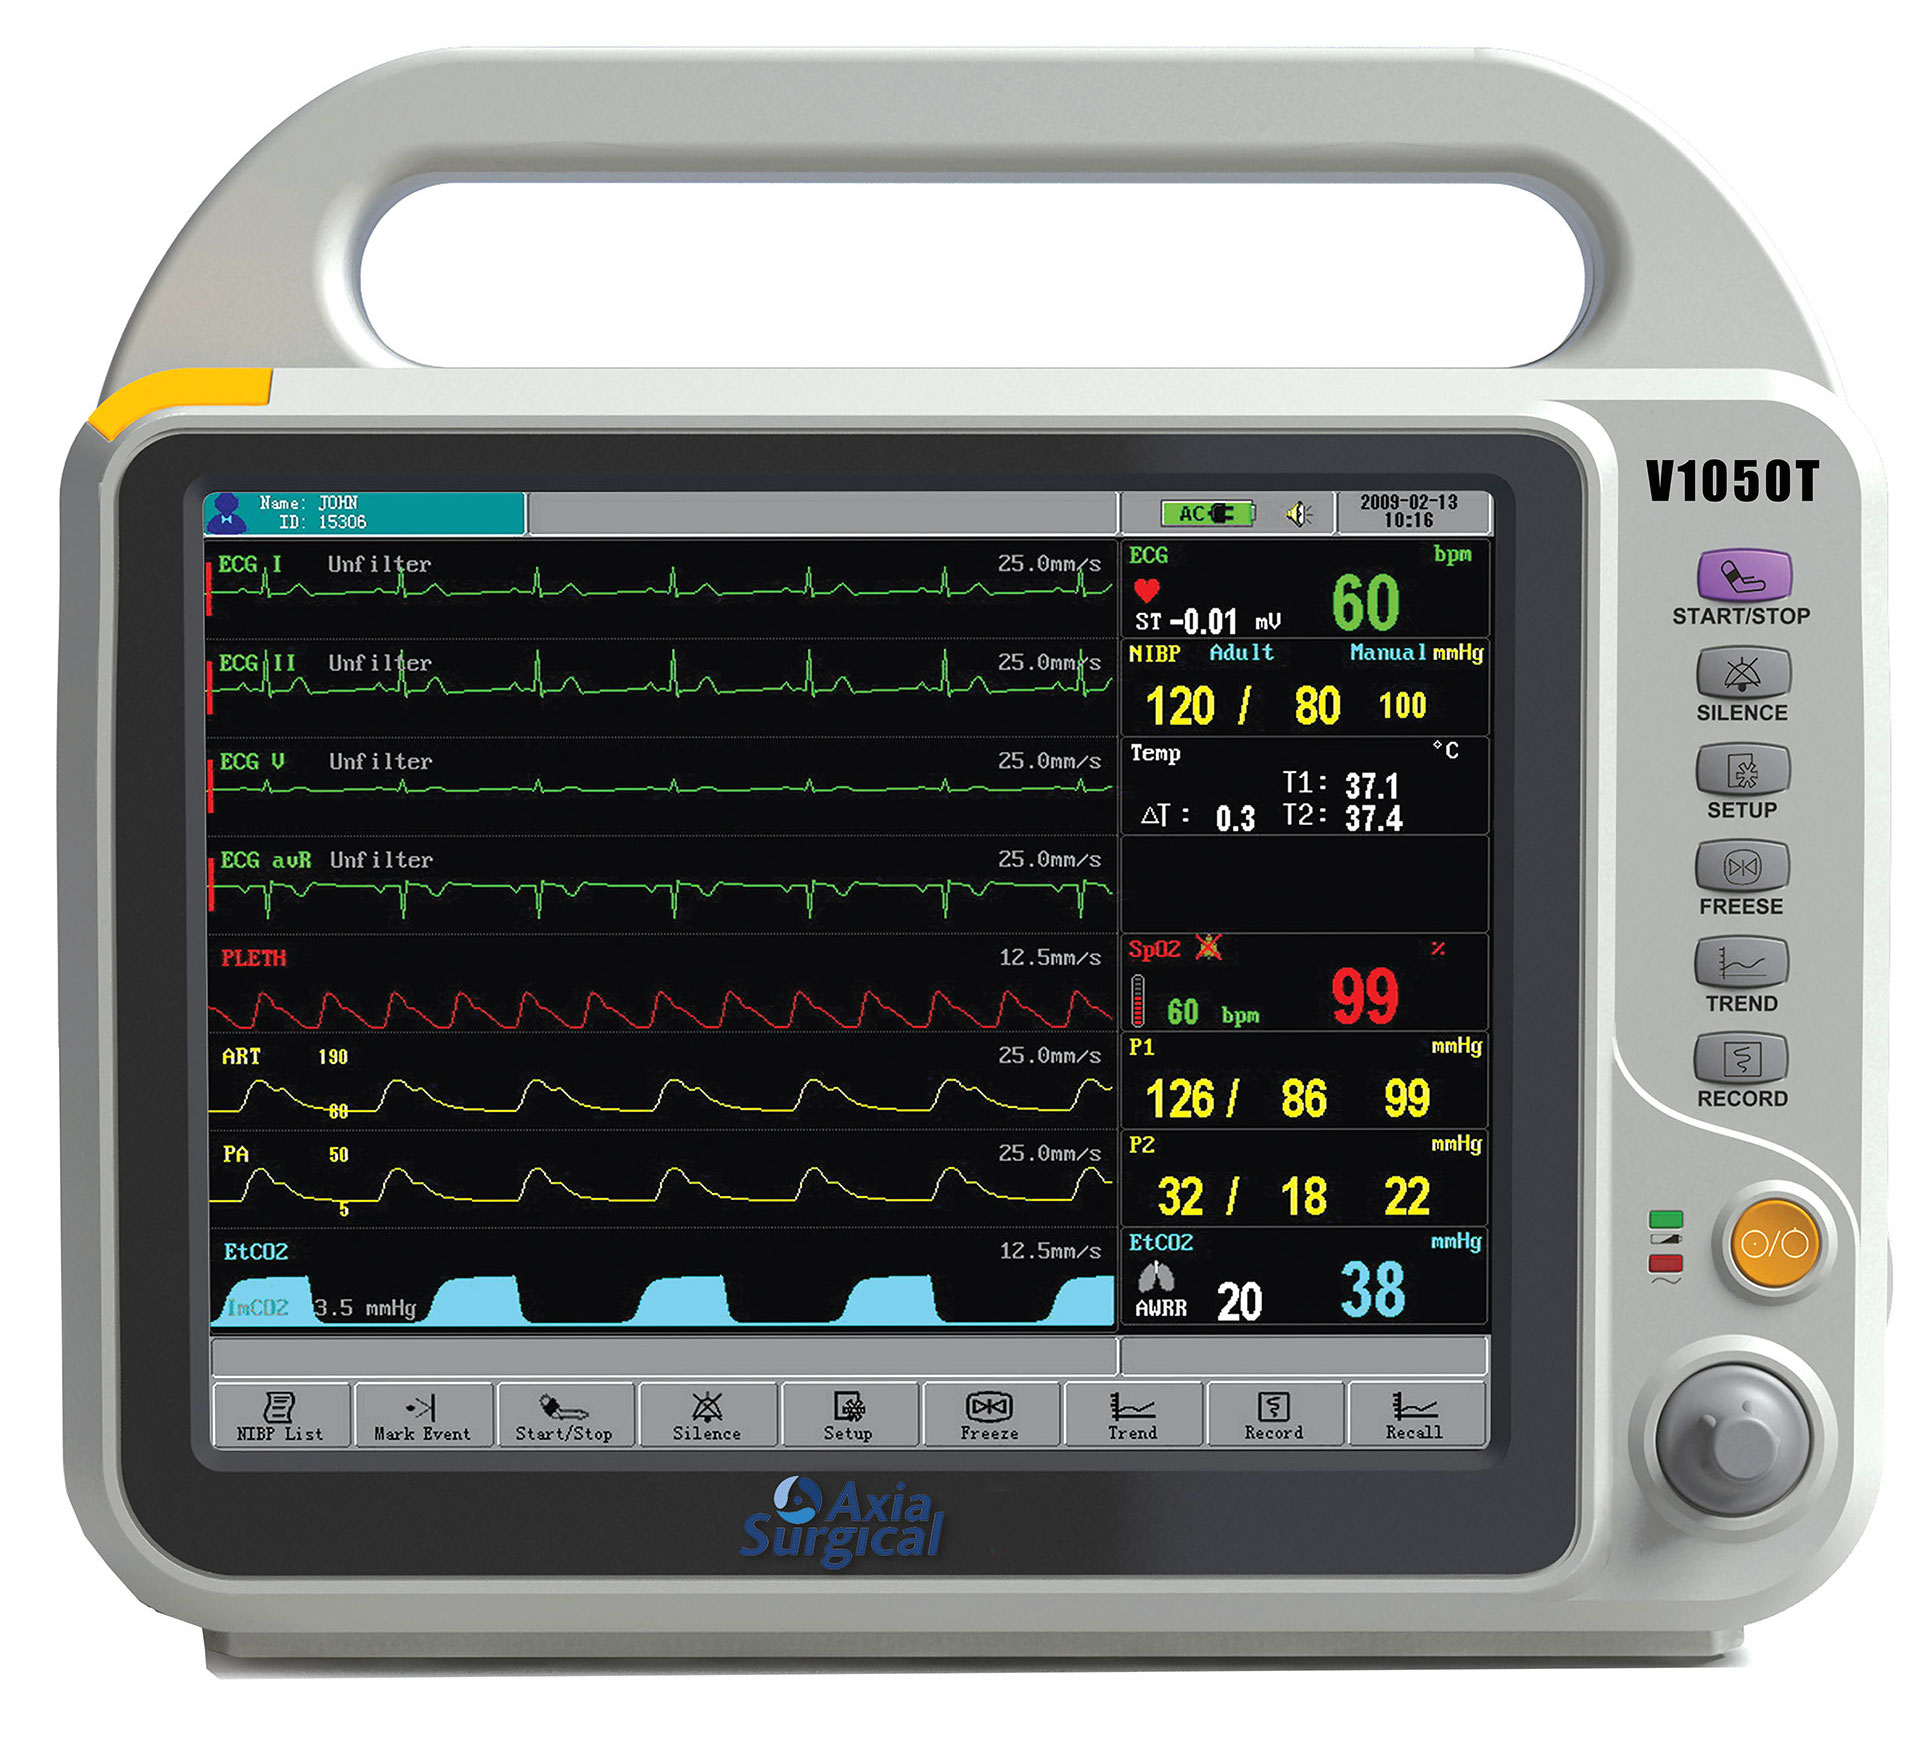 Axia V1050t Features And Inuitive Touch Screen Patient Monitor